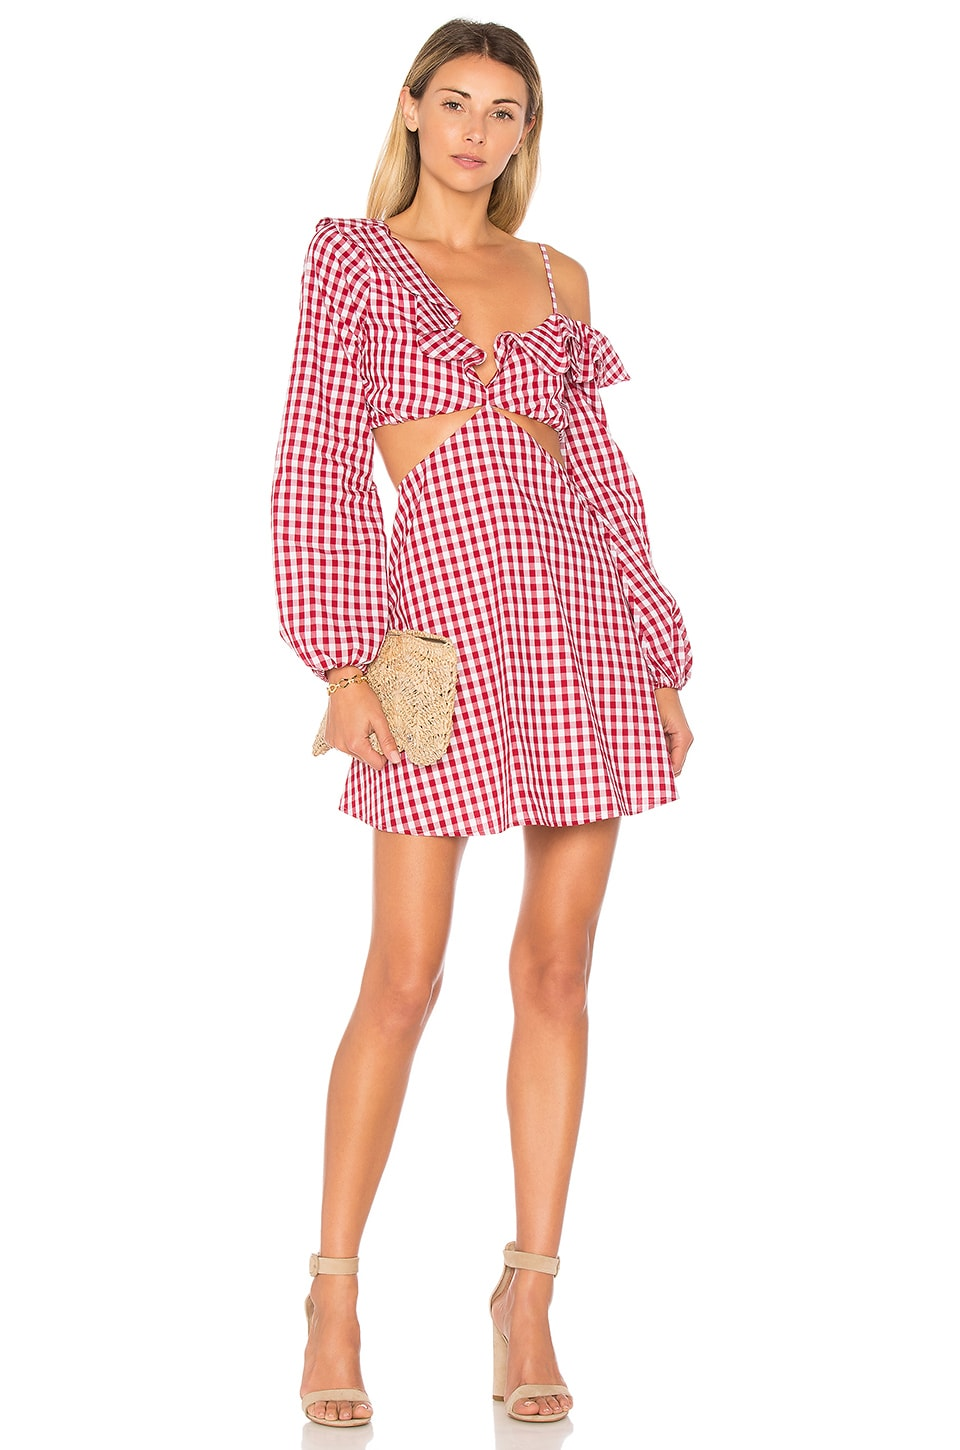 Lovers + Friends X REVOLVE Love Bliss Mini Dress in Red Gingham